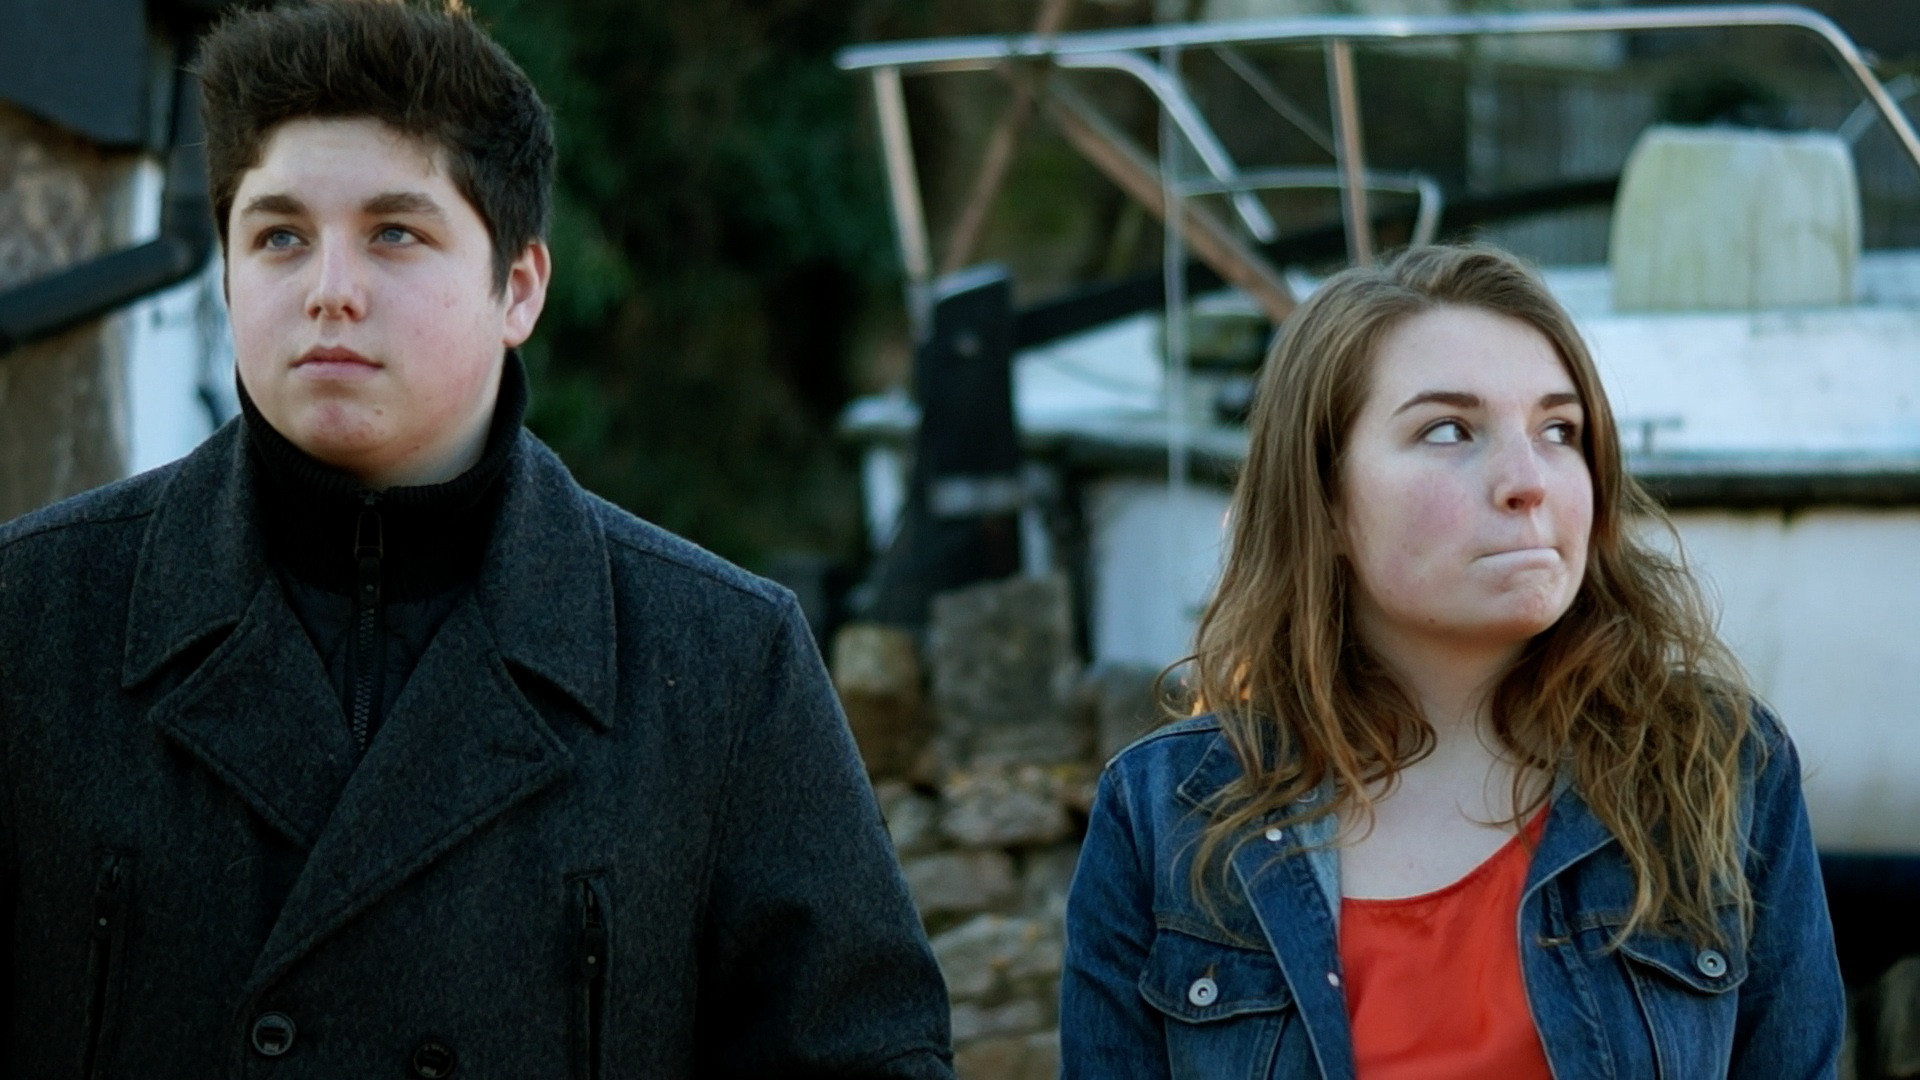 Jack Stringer and Leah Sperring as Barney Fields and Jess Spencer